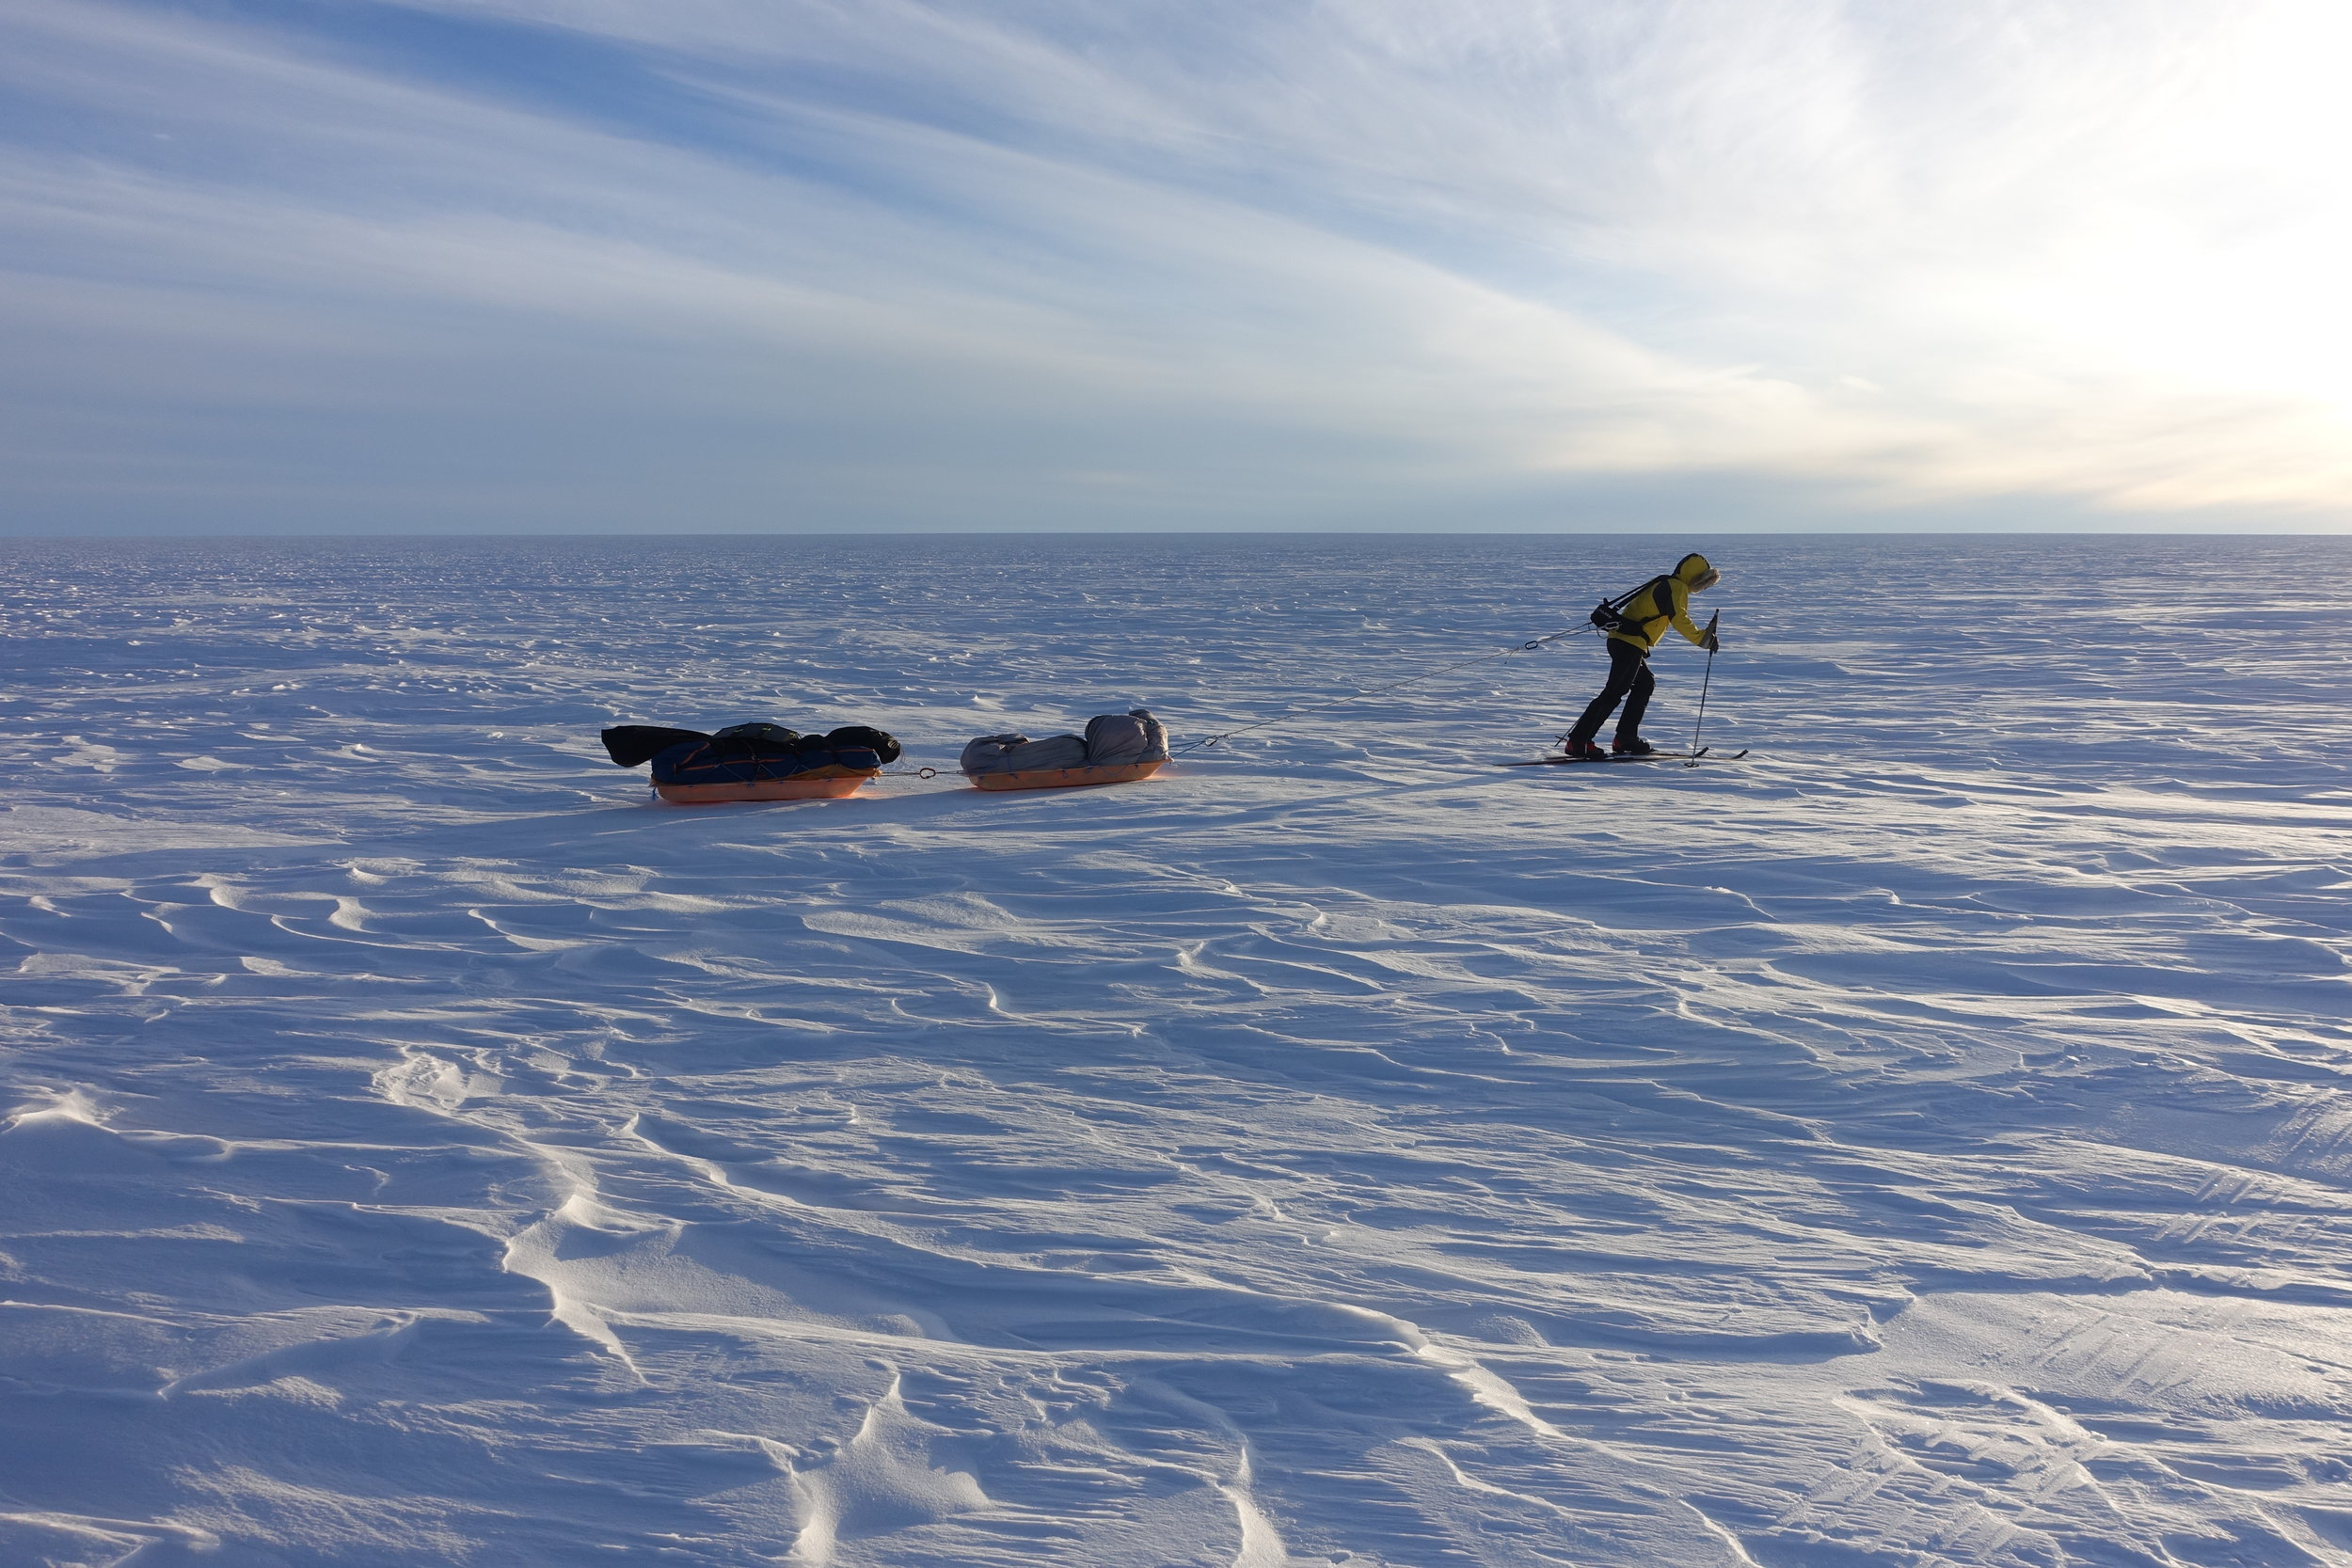 Crossing Greenland - Training for the impossible came in the form of a 400-mile human powered crossing of the Greenland Ice Sheet. Colin pulled all his supplies needed for the month long expedition - testing and fine tuning his gear and systems in preparation for Antarctica.